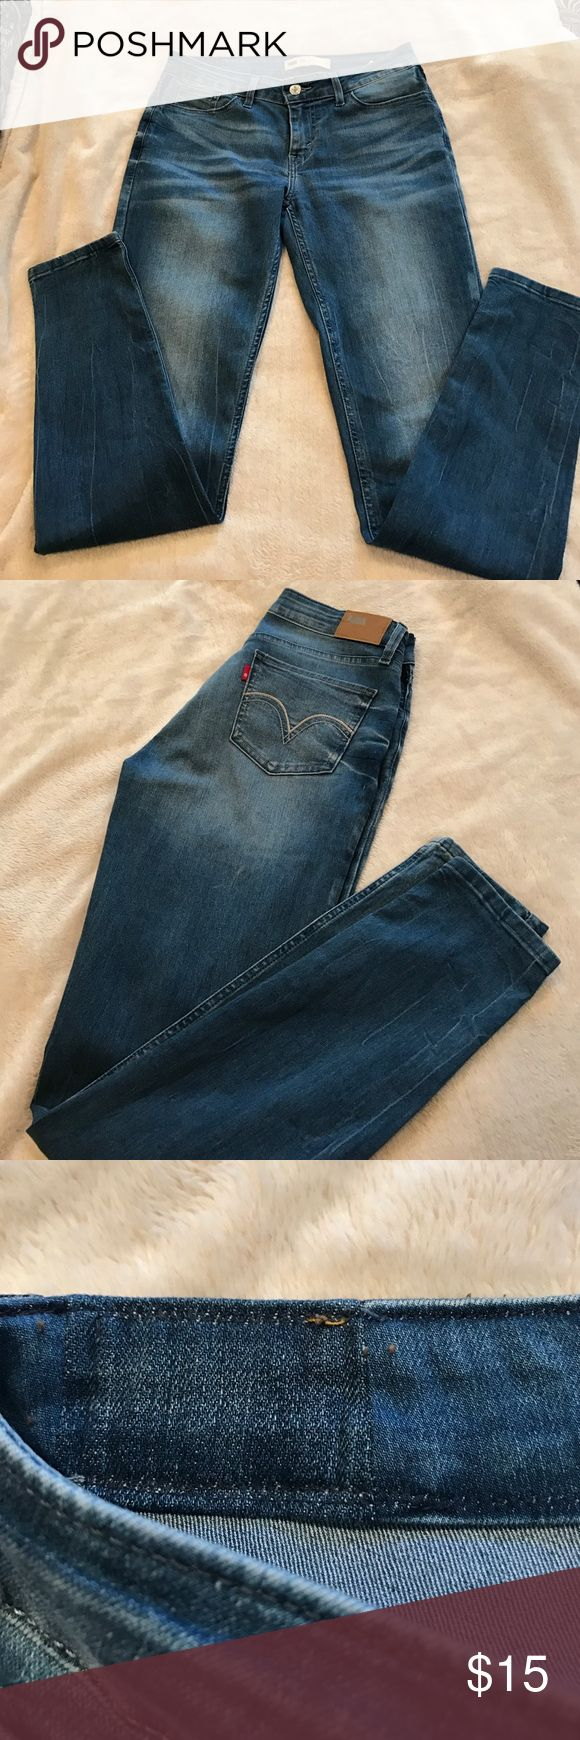 Levi's jeans ❤️👌🏻 SALE 🔥‼️🔥🛍🛍🛍🔥‼️🔥 Skinny faded wash ..they have been altered as shown in picture..totally unnoticeable 👌🏻 size reads 29 .i had inch added and they are now size 30 waist !! Perfect shape 💙💙 Levi's Pants Skinny